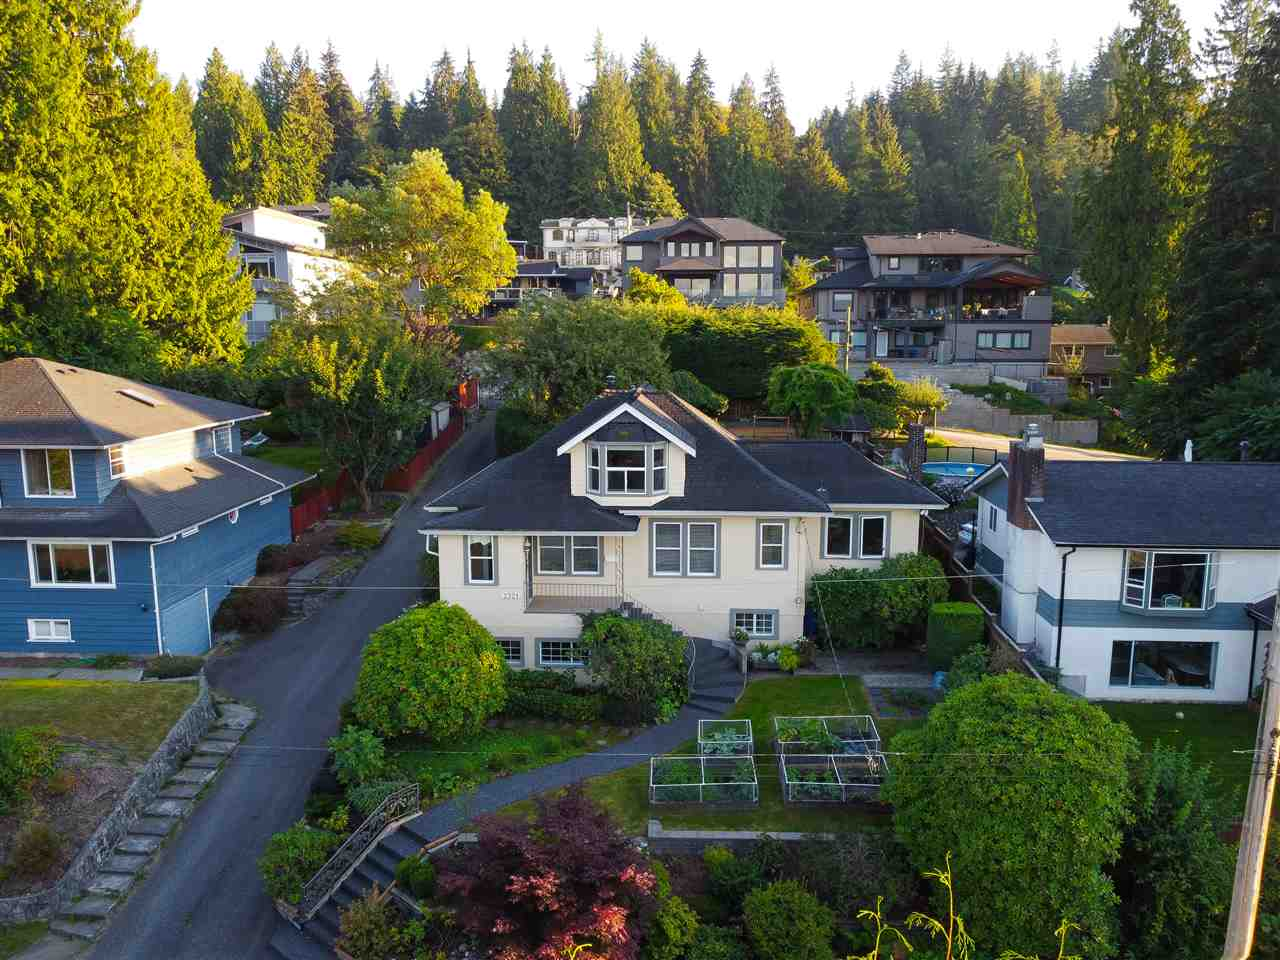 2321 ST GEORGE STREET - Port Moody Centre House/Single Family for sale, 4 Bedrooms (R2497458) - #2